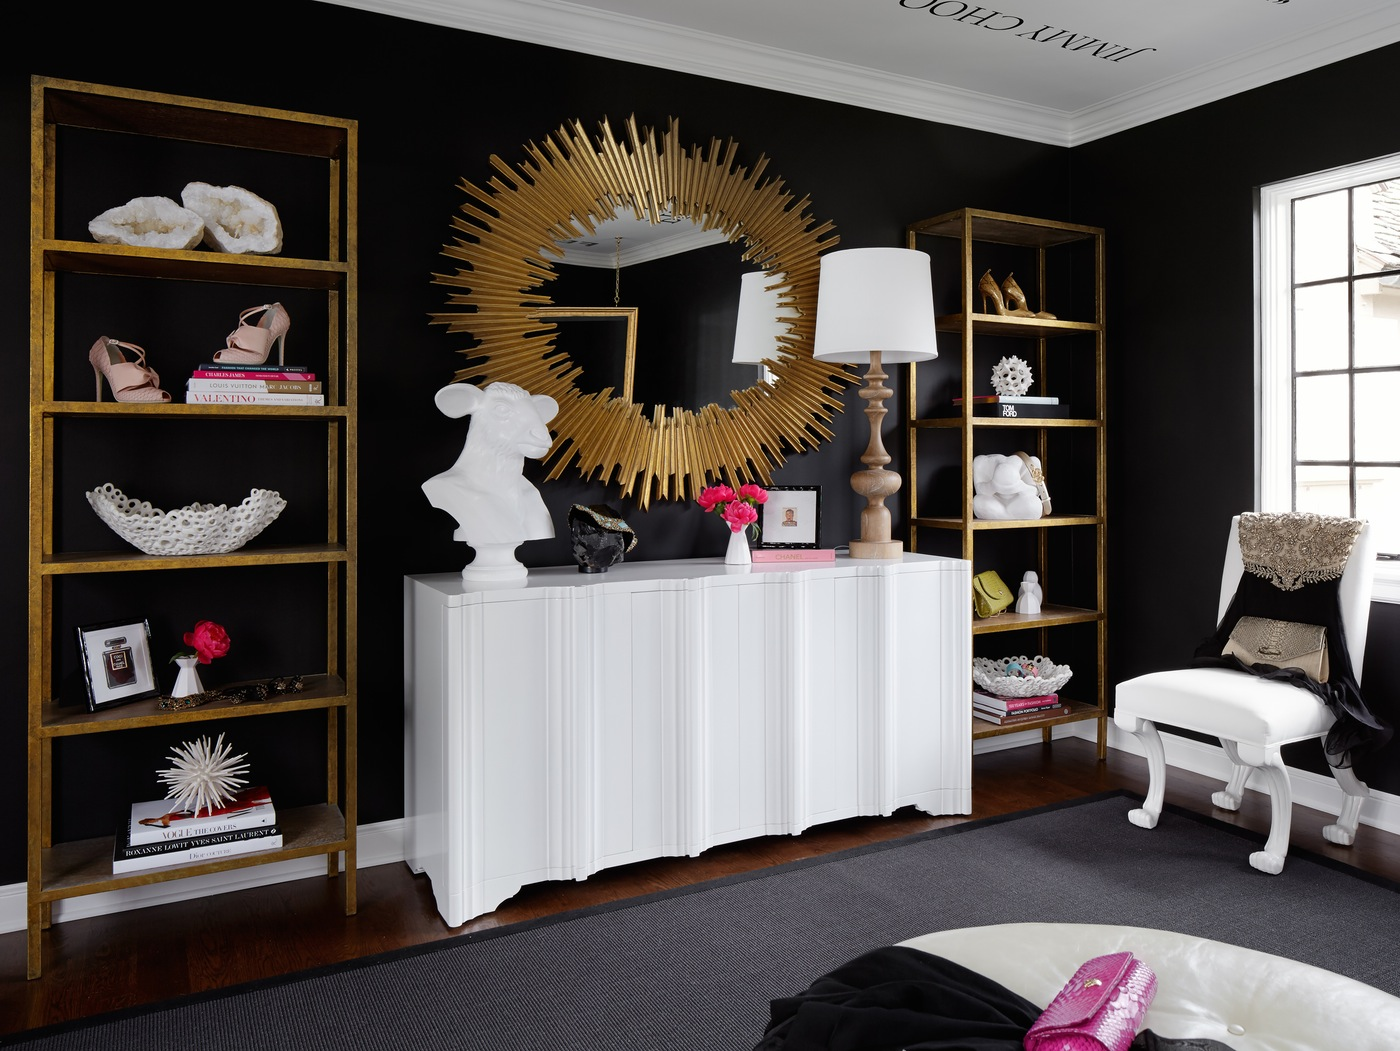 sunburst starburst mirror dream closet inspiration transitional black and white home office work space eclectic glam style interior bedroom